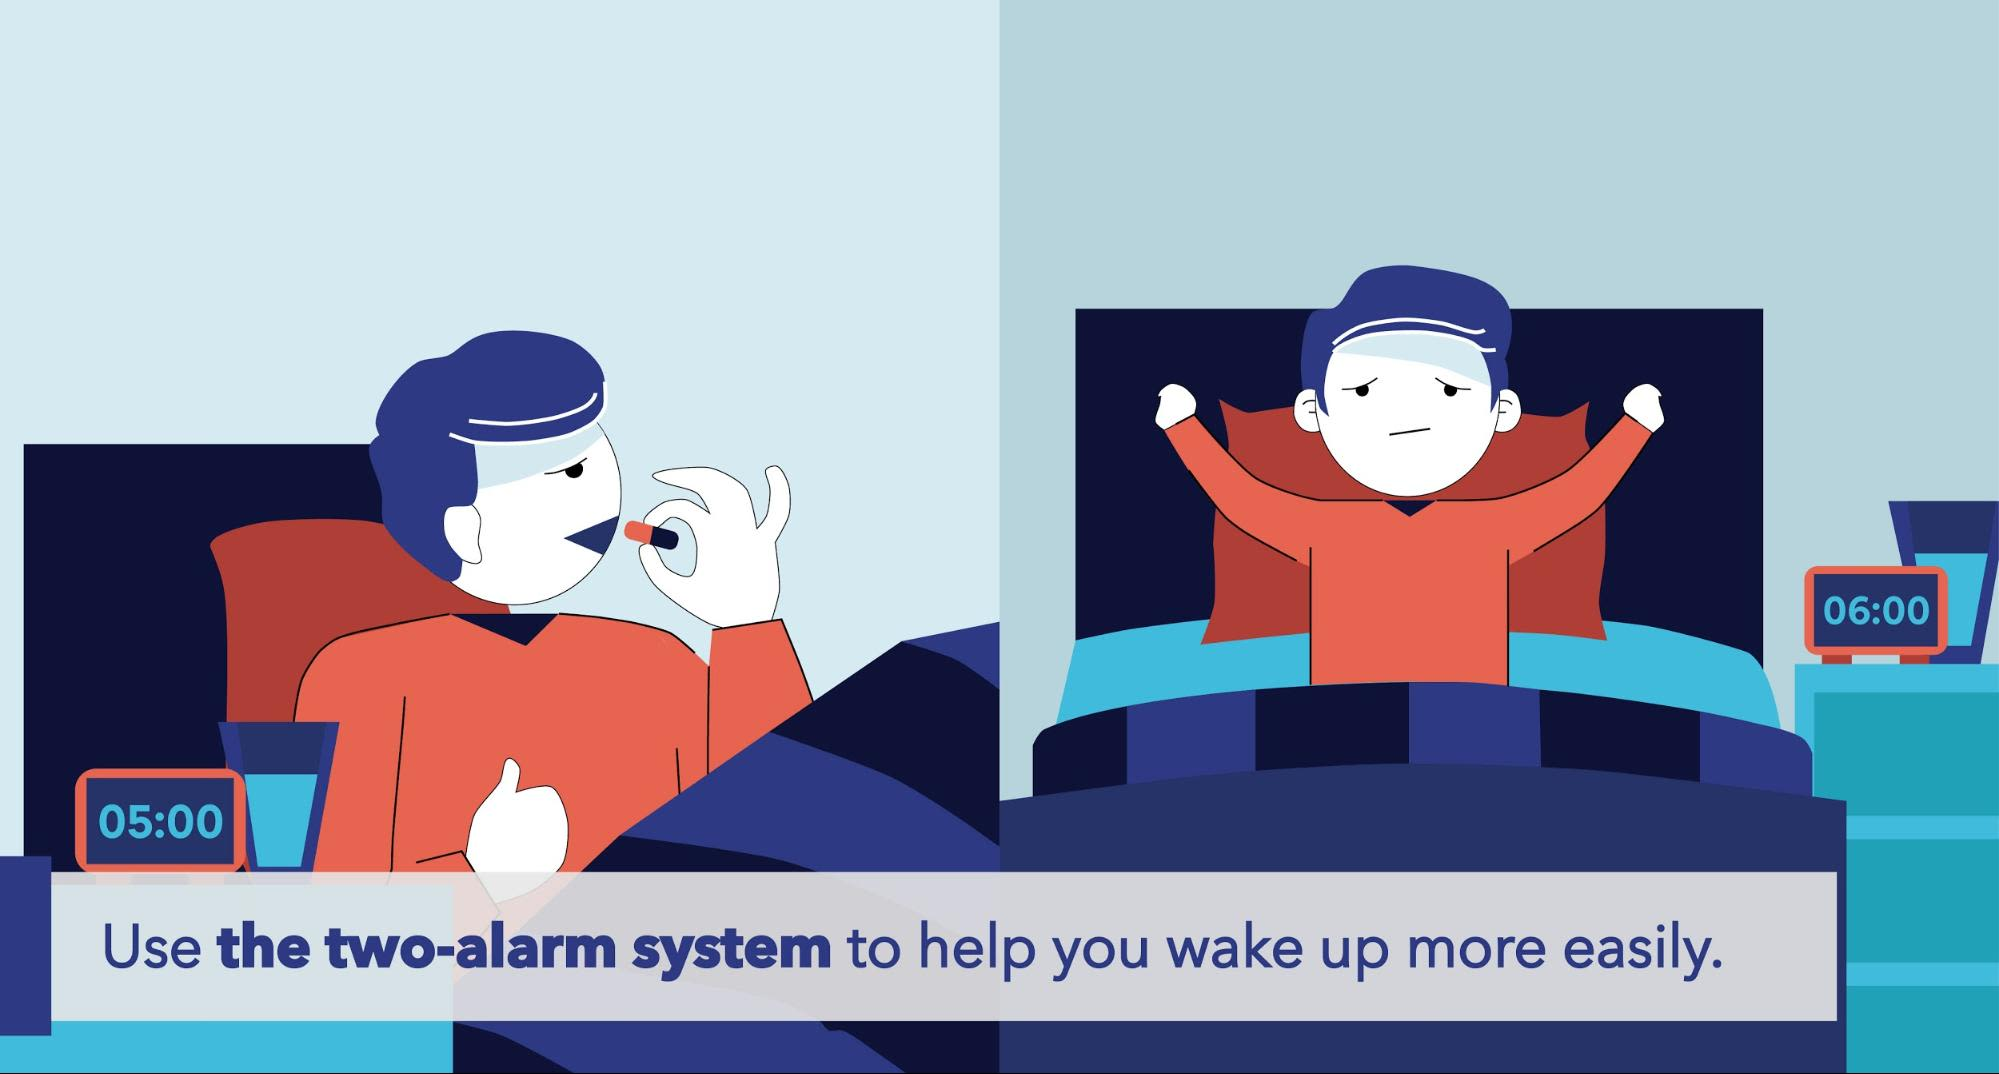 Use the two-alarm system to help you wake up more easily.